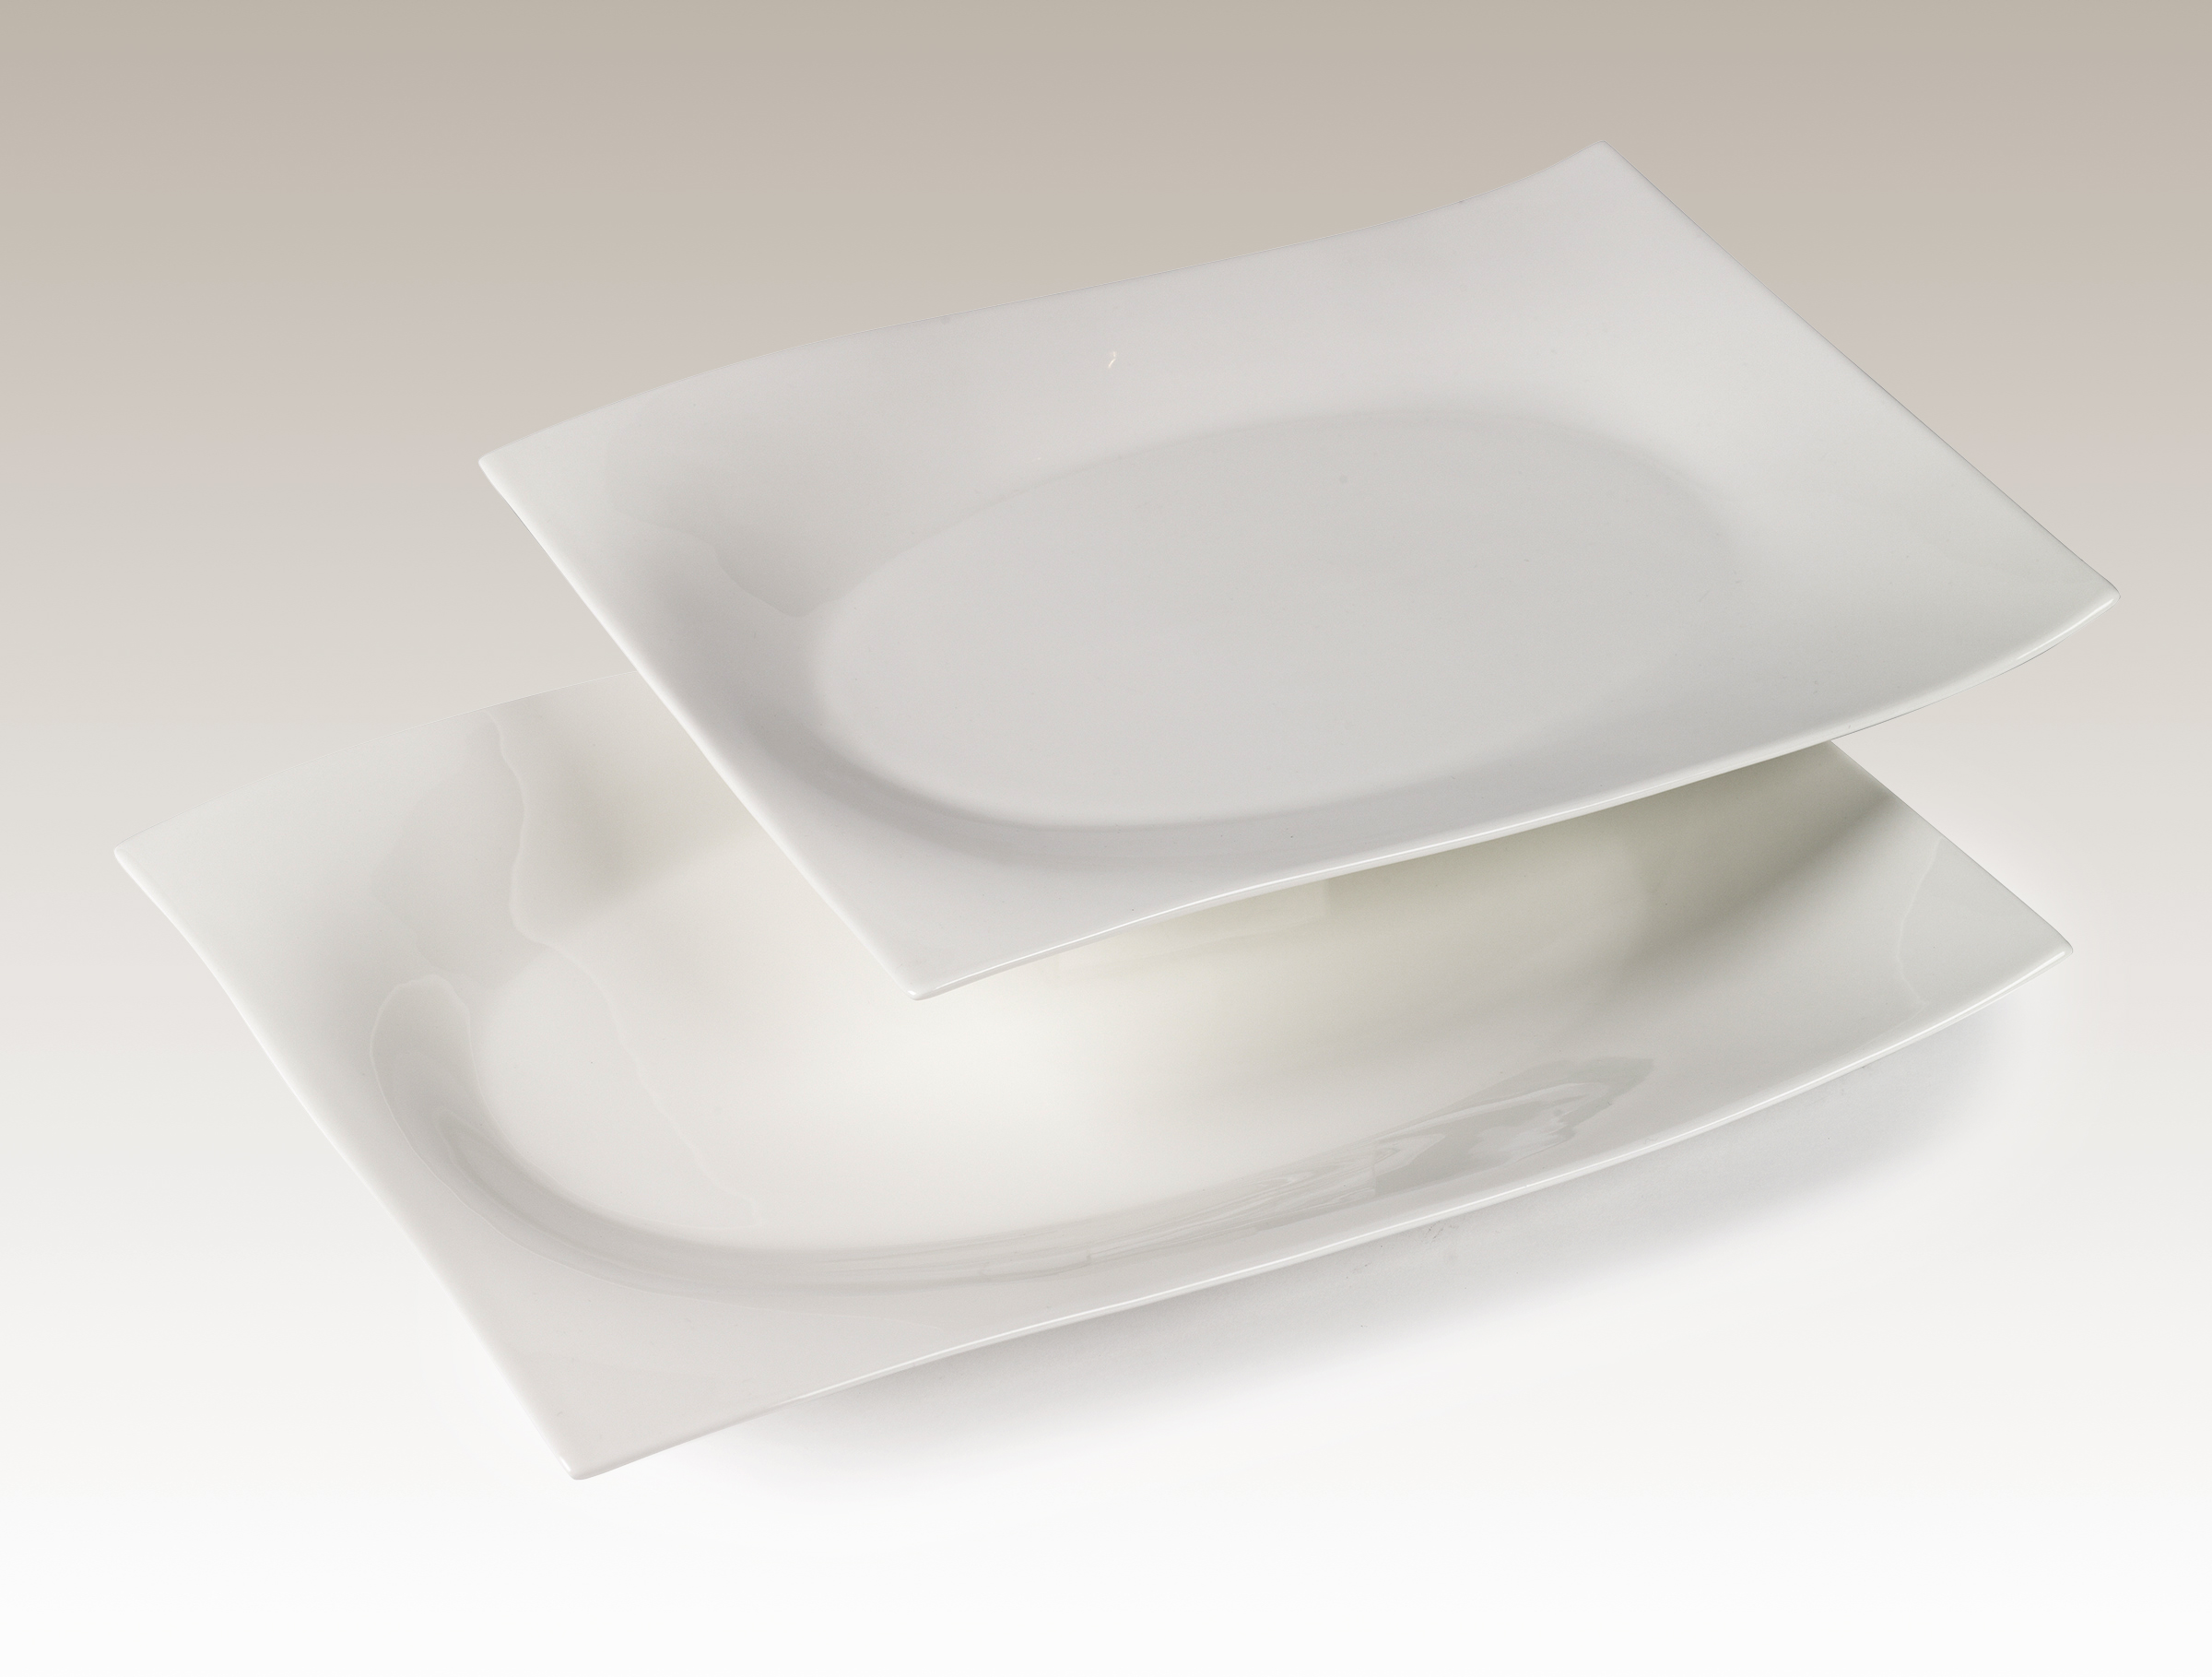 Set of Two 16 Inch Recycled Porcelain Serving Platters by Ecoware